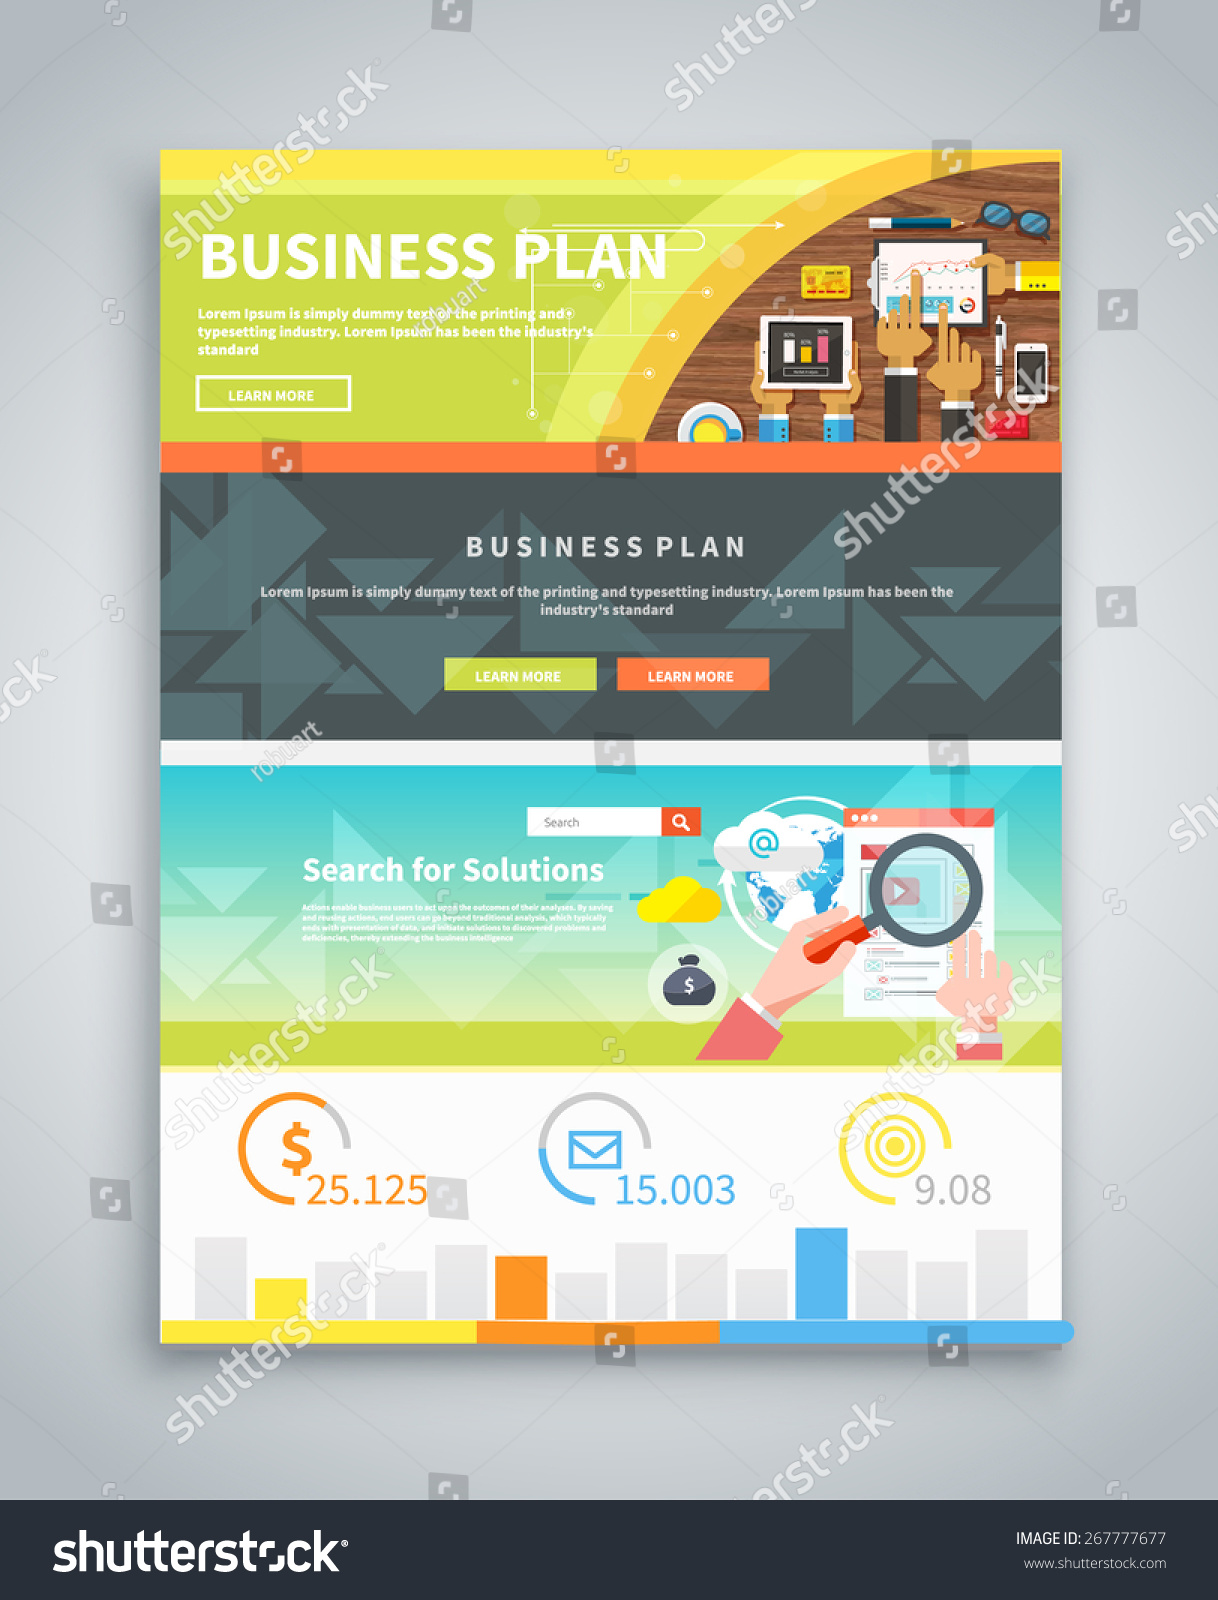 infographic business brochures banners analytics strategy stock infographic business brochures banners analytics strategy data visualization web banners marketing materials